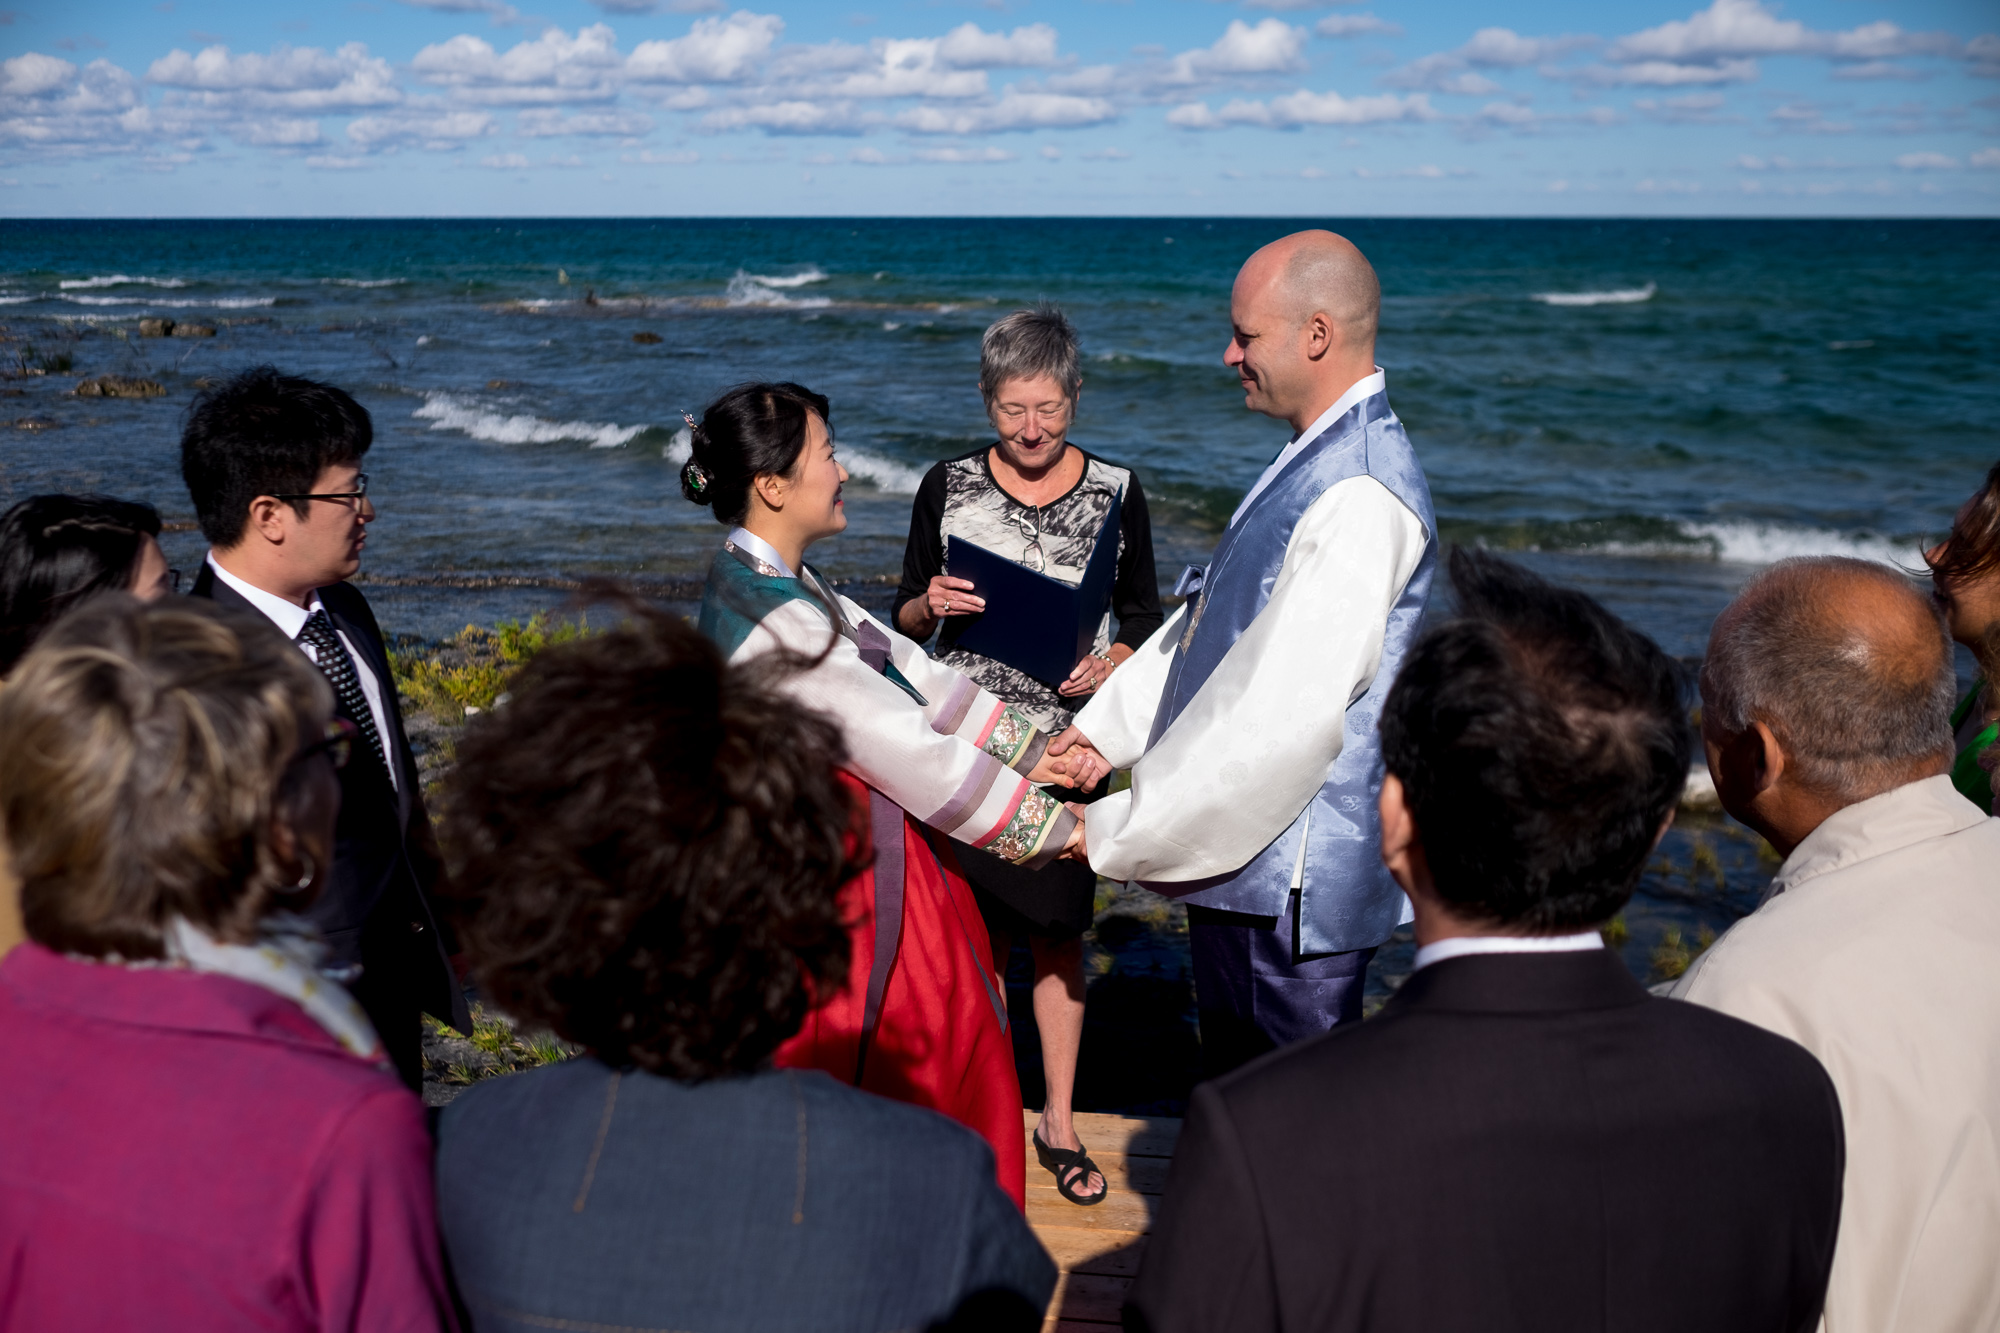 Guests look on as Joohee + Joel are married on the shore of Georgian Bay in Tobermory.